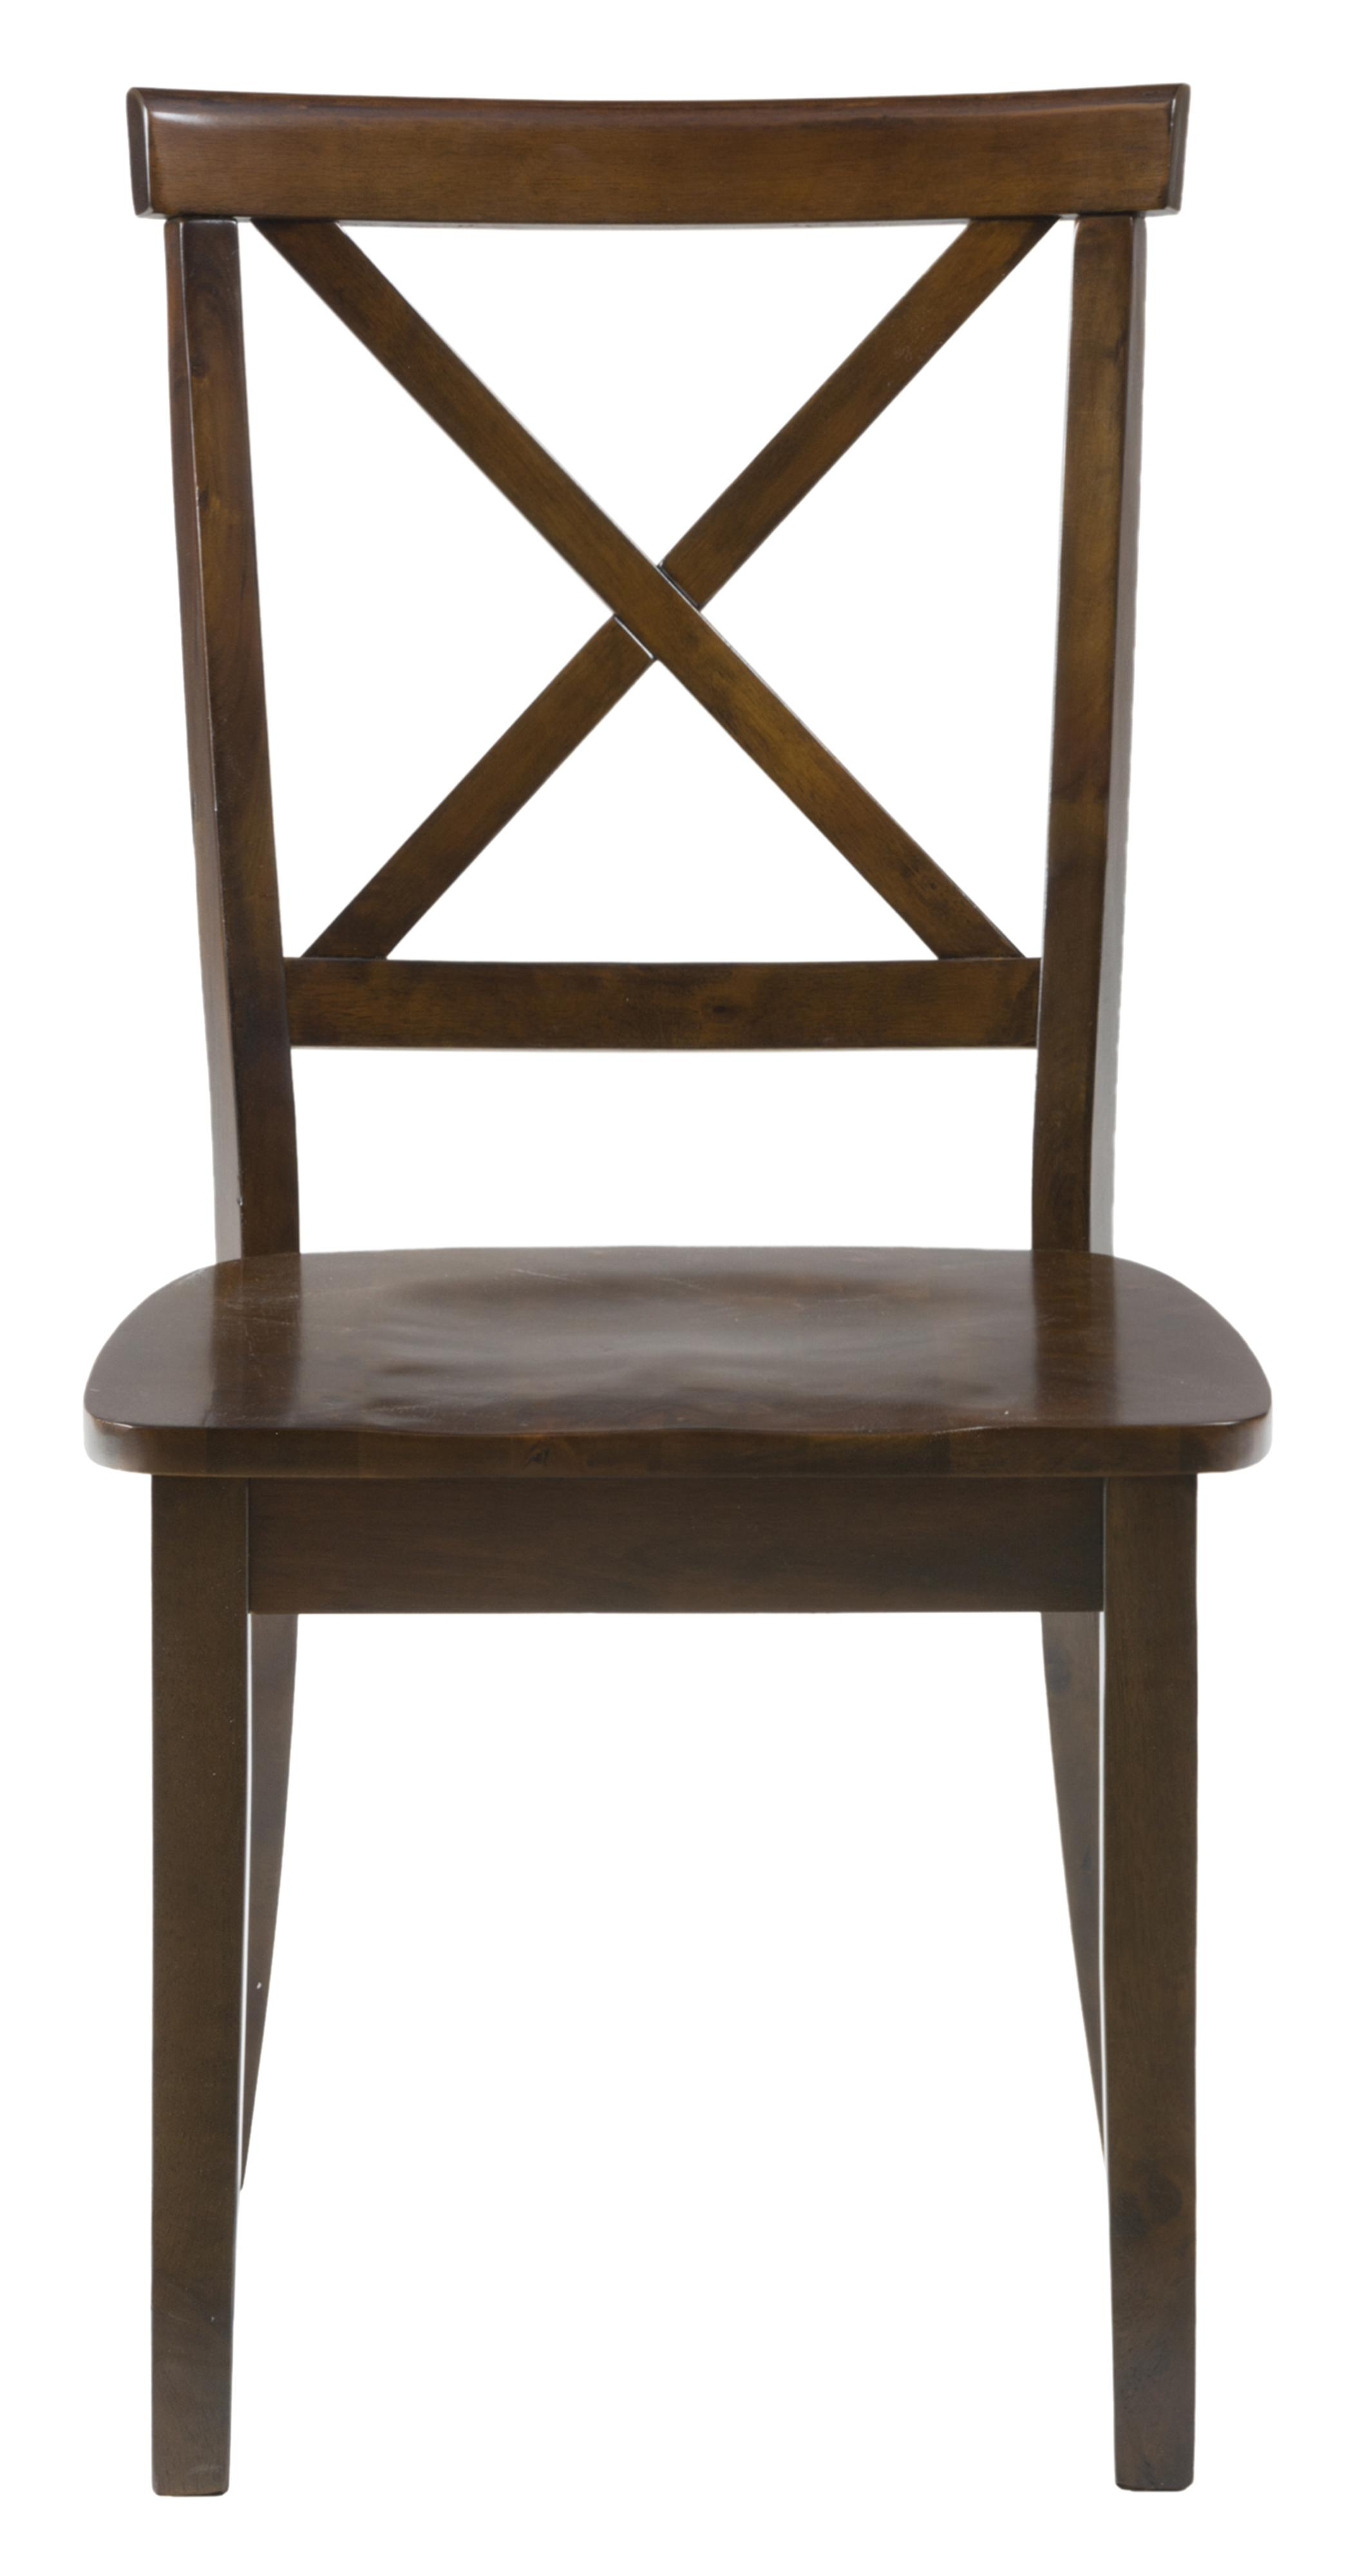 X Back Chair with Wood Seat by Jofran